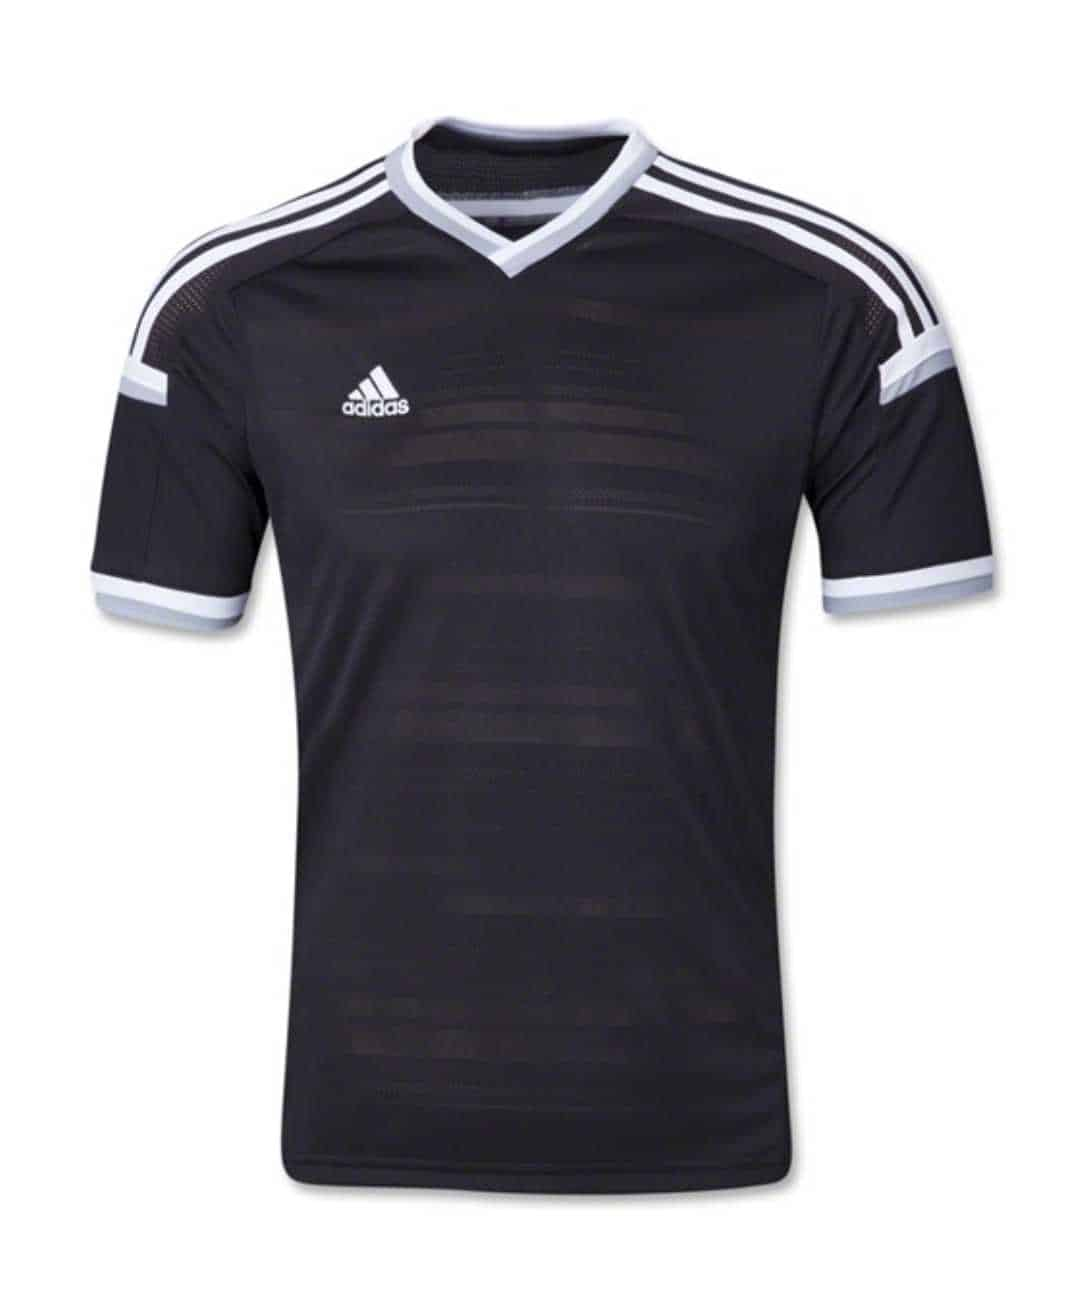 adidas Condivo 14 Soccer Uniform - TheTeamFactory.com - photo#32